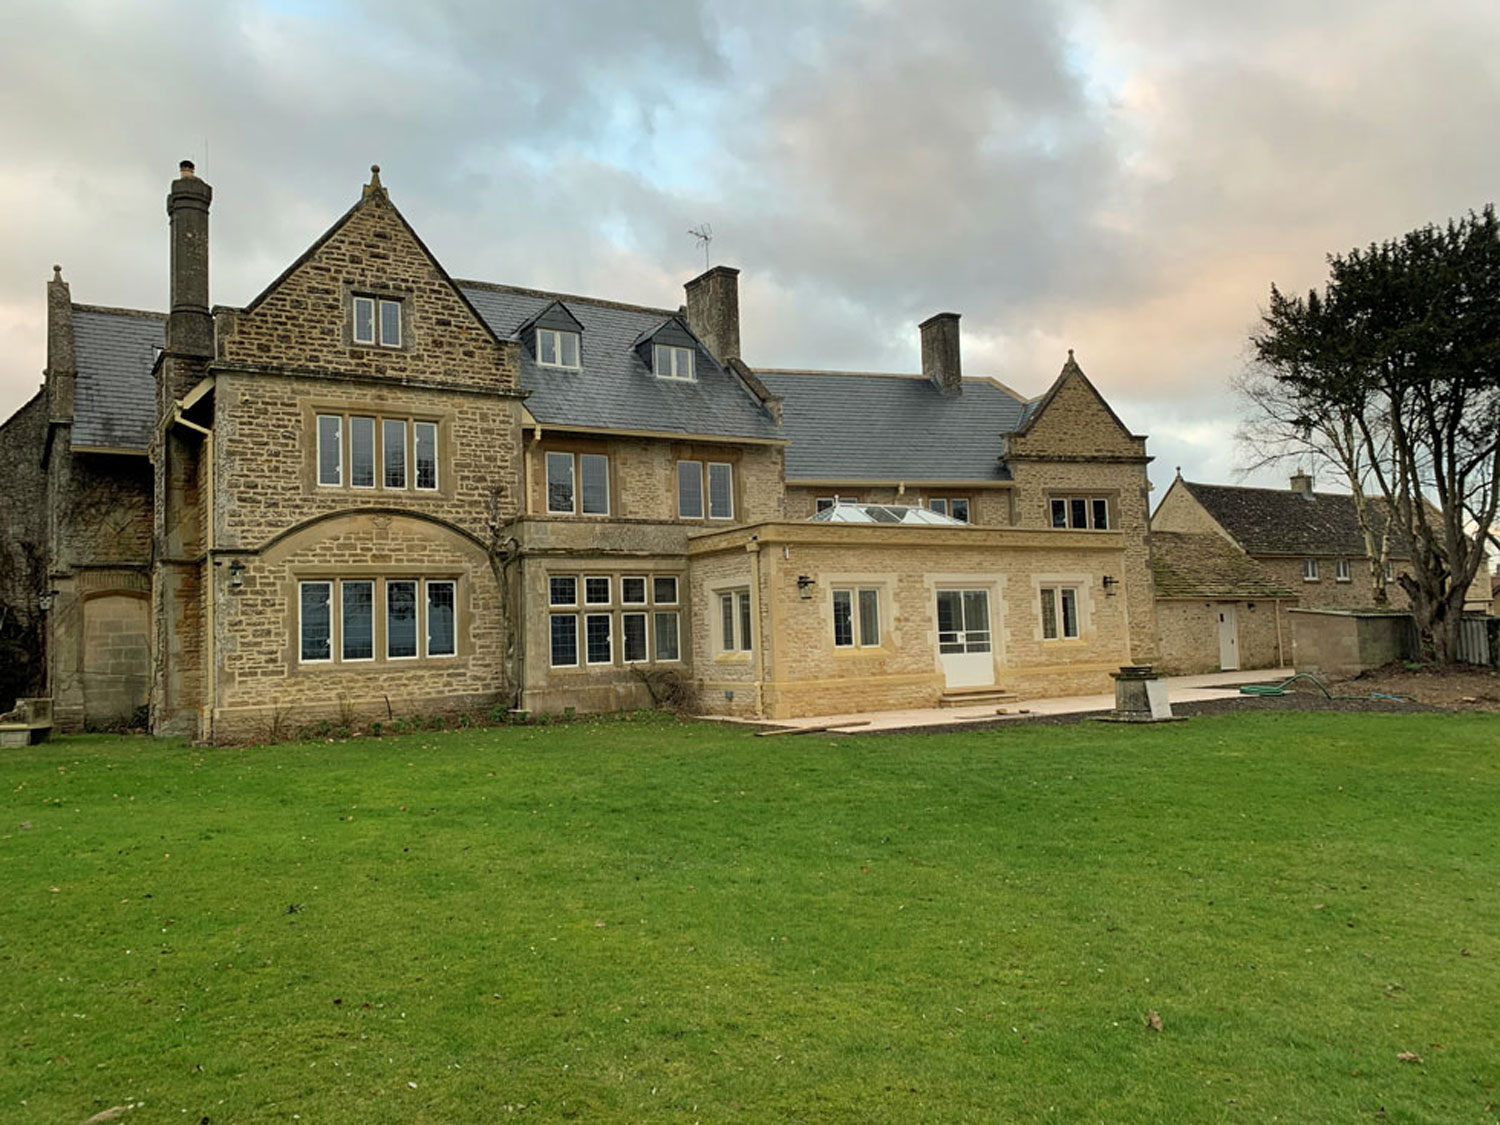 Manor House Refurbishment to Include New Windows, Roof and Garden Room Extension